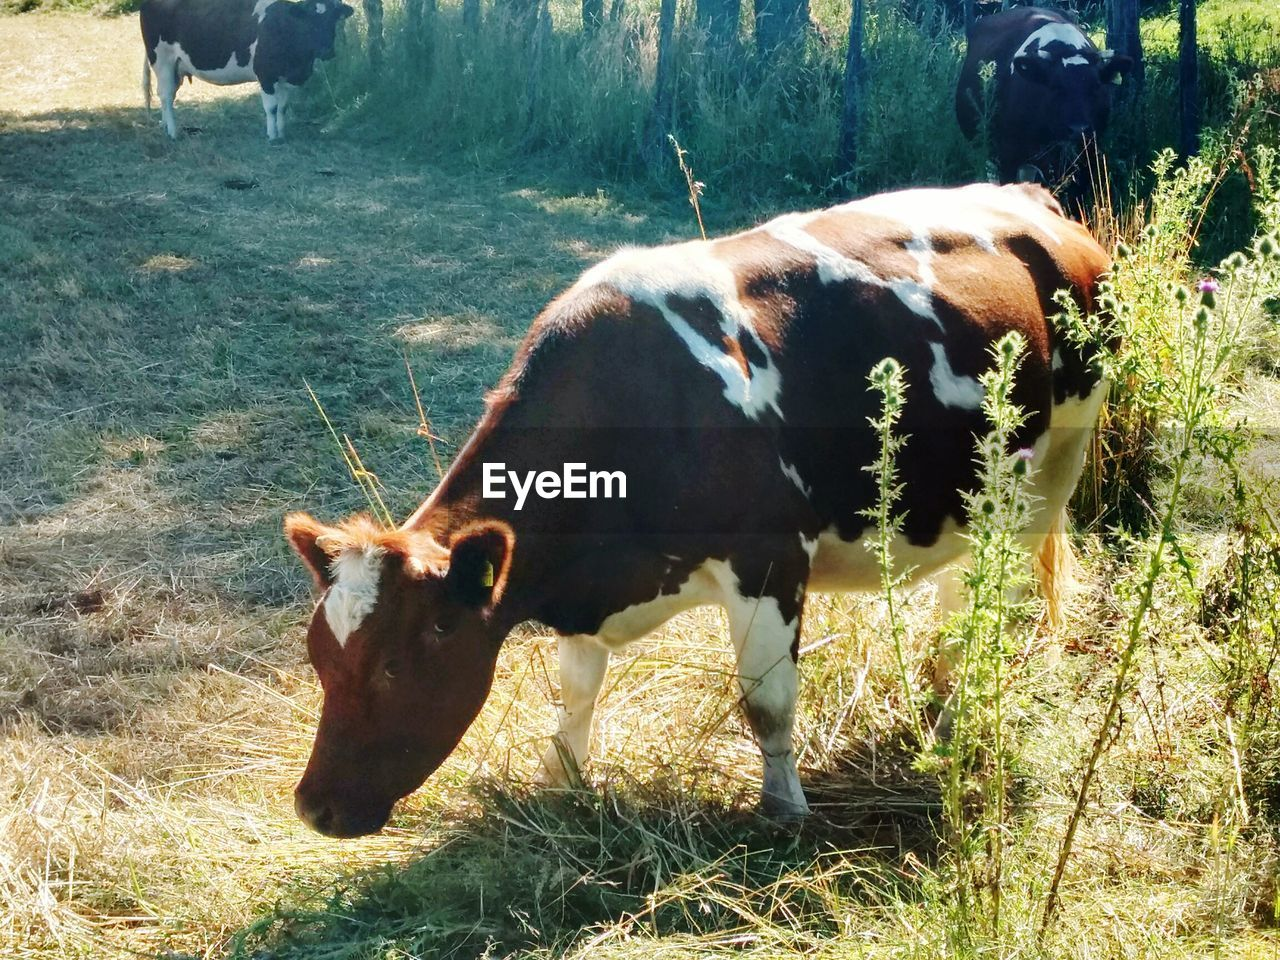 domestic animals, animal themes, mammal, cow, cattle, livestock, grass, domestic cattle, field, day, farm animal, no people, nature, sunlight, outdoors, one animal, domesticated animal tag, grazing, close-up